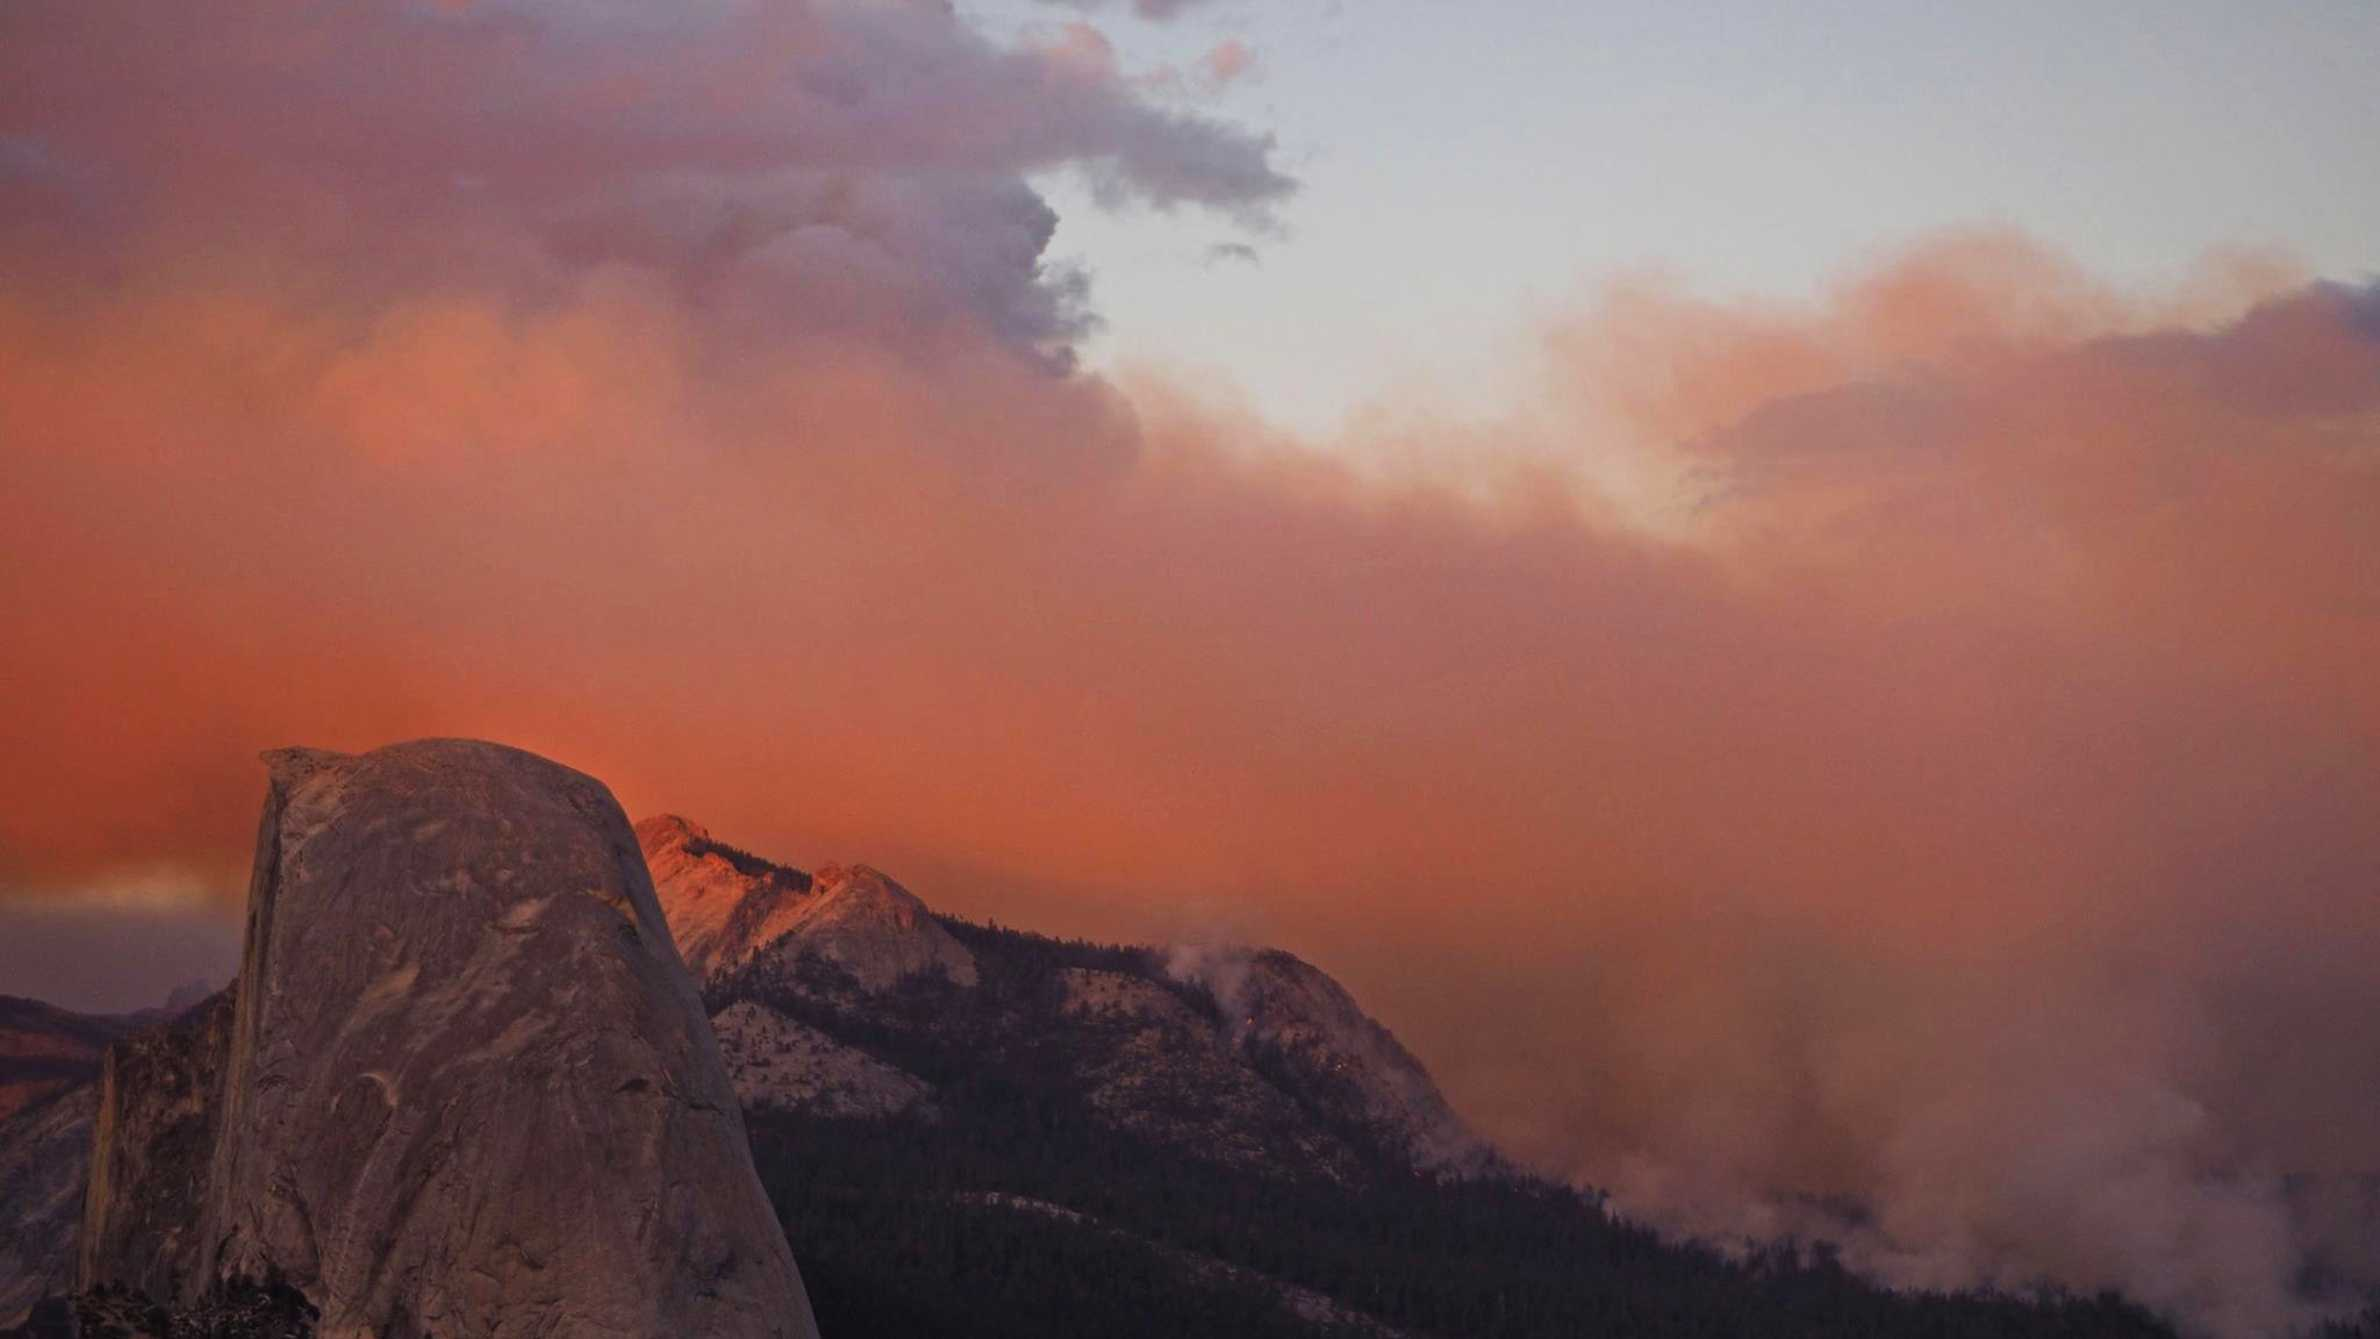 The fire sent smoke into Yosemite Valley, from where the park's famous high granite summits, Half Dome and El Capitan, are visible.